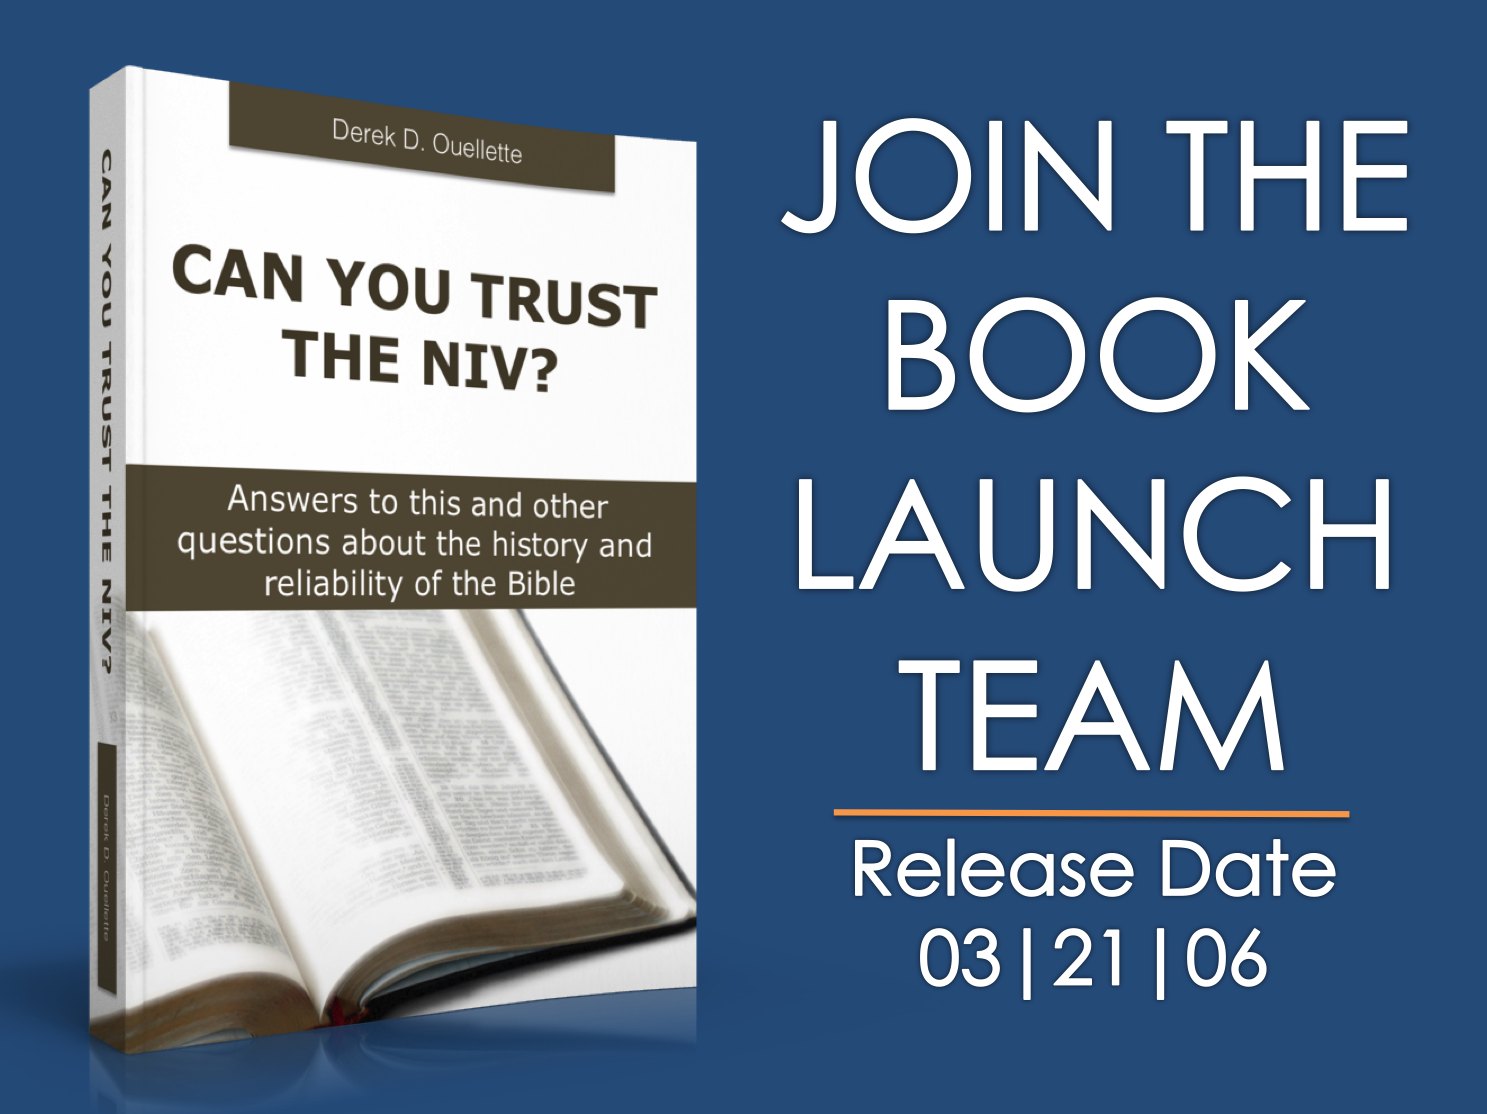 Can You Trust The NIV